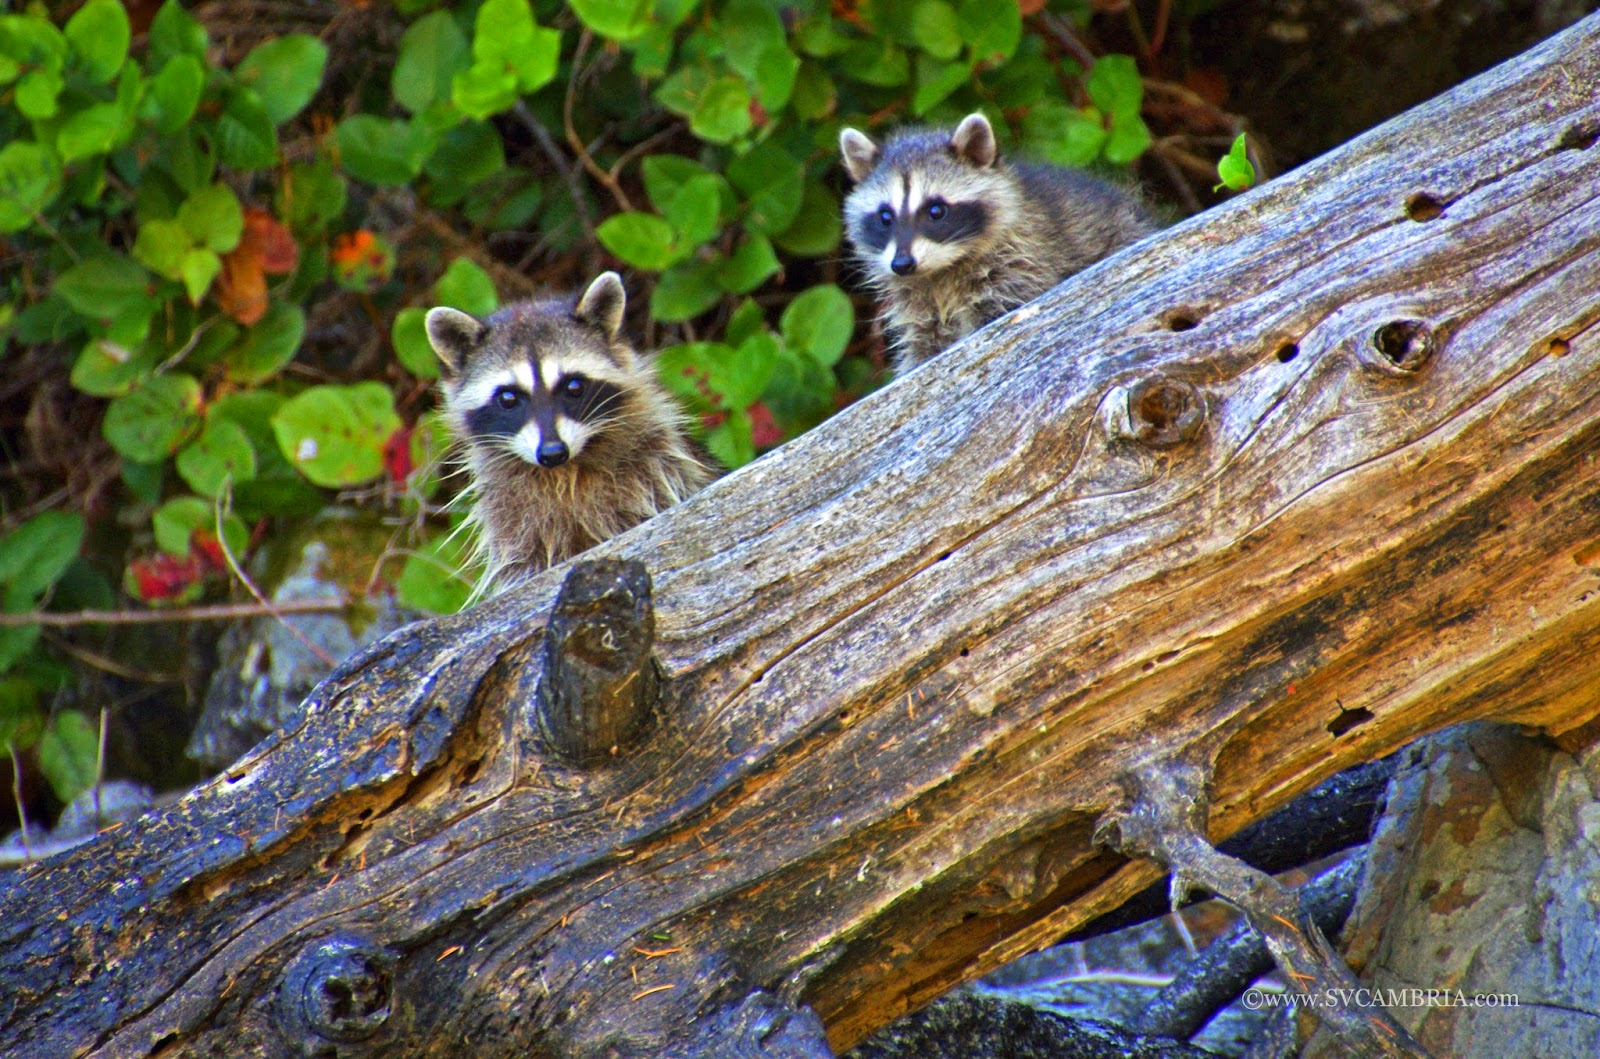 Raccoons foraging along the shore in Octopus Islands Marine Park.